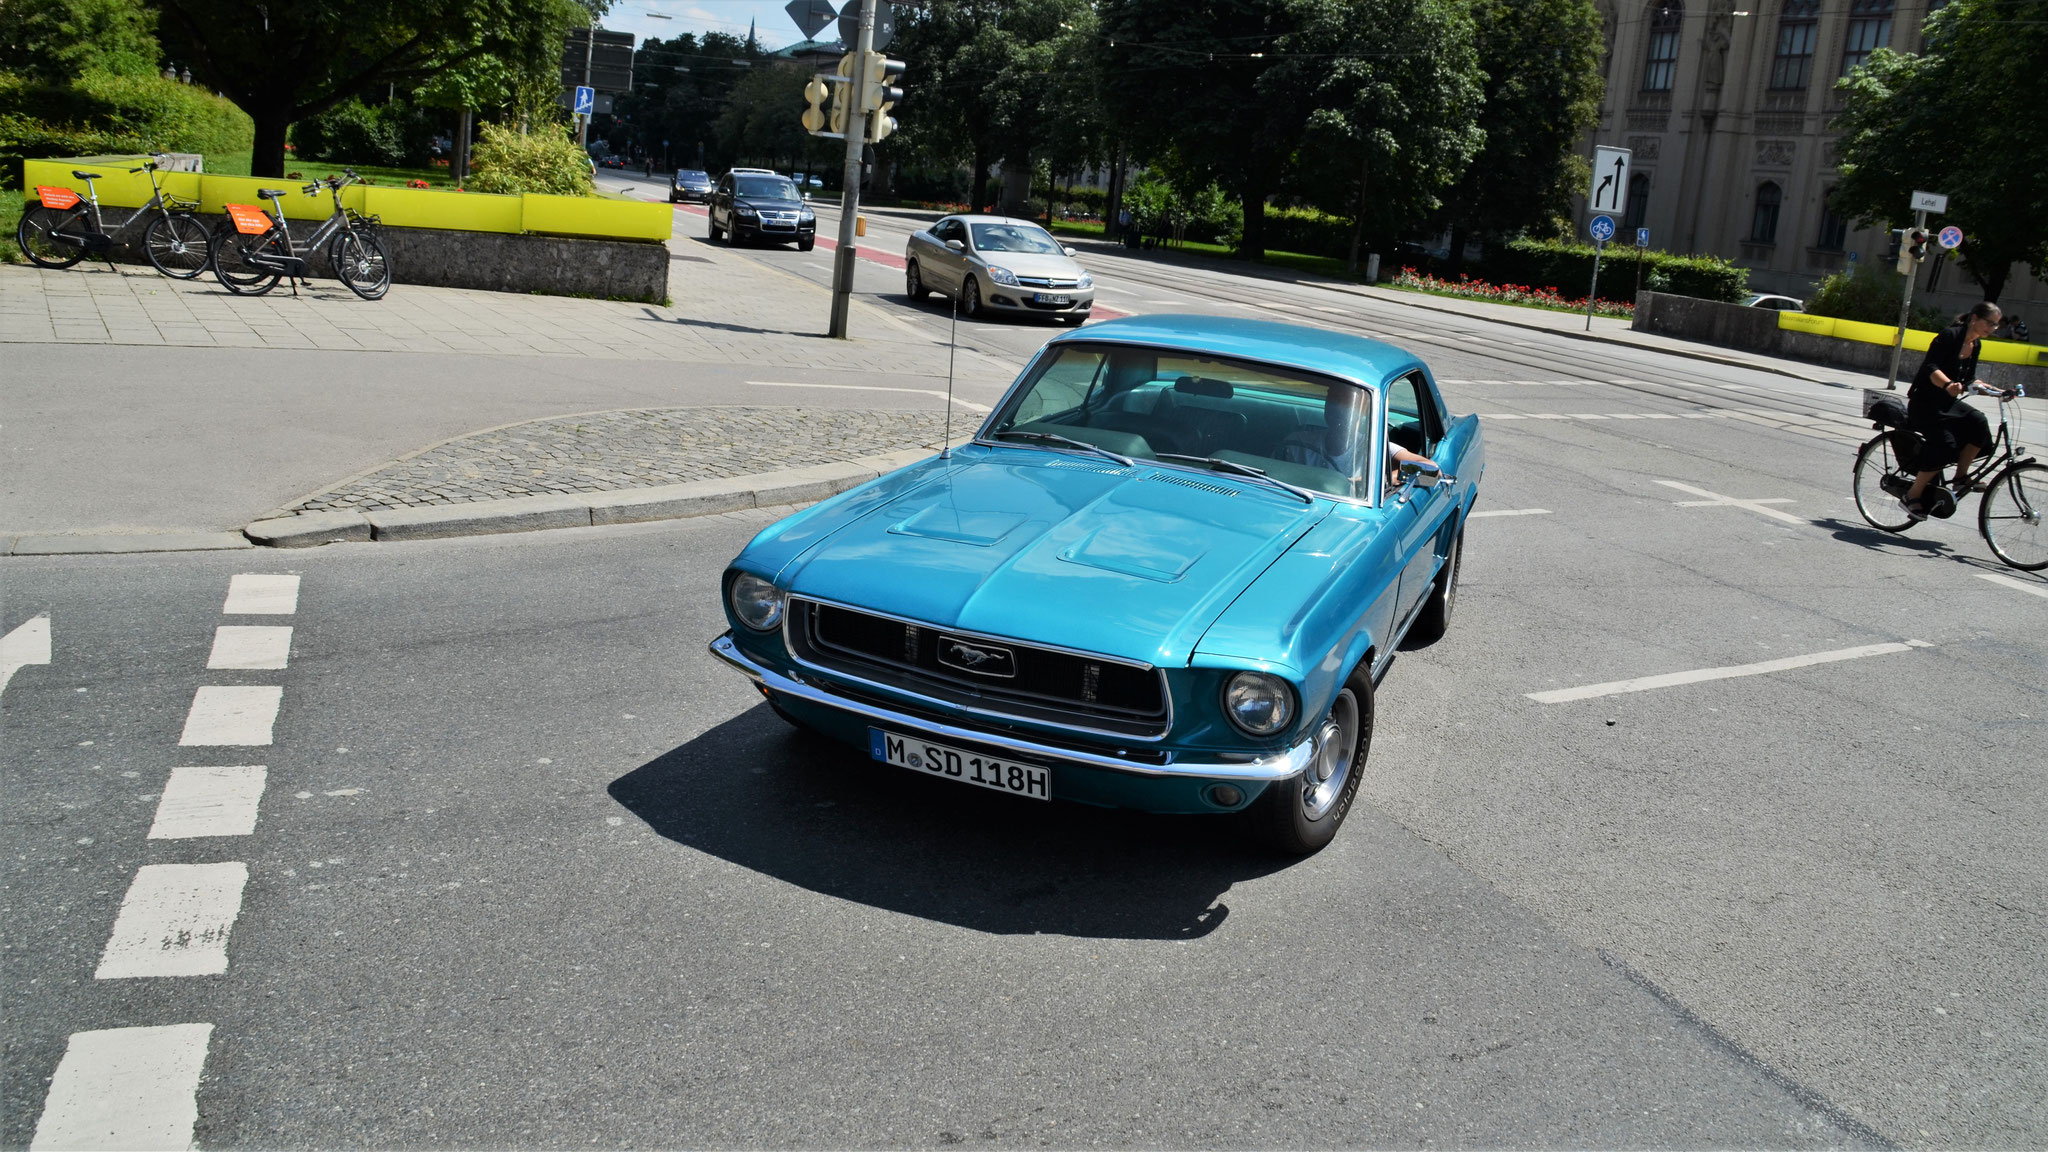 Mustang I - M-SD-118H